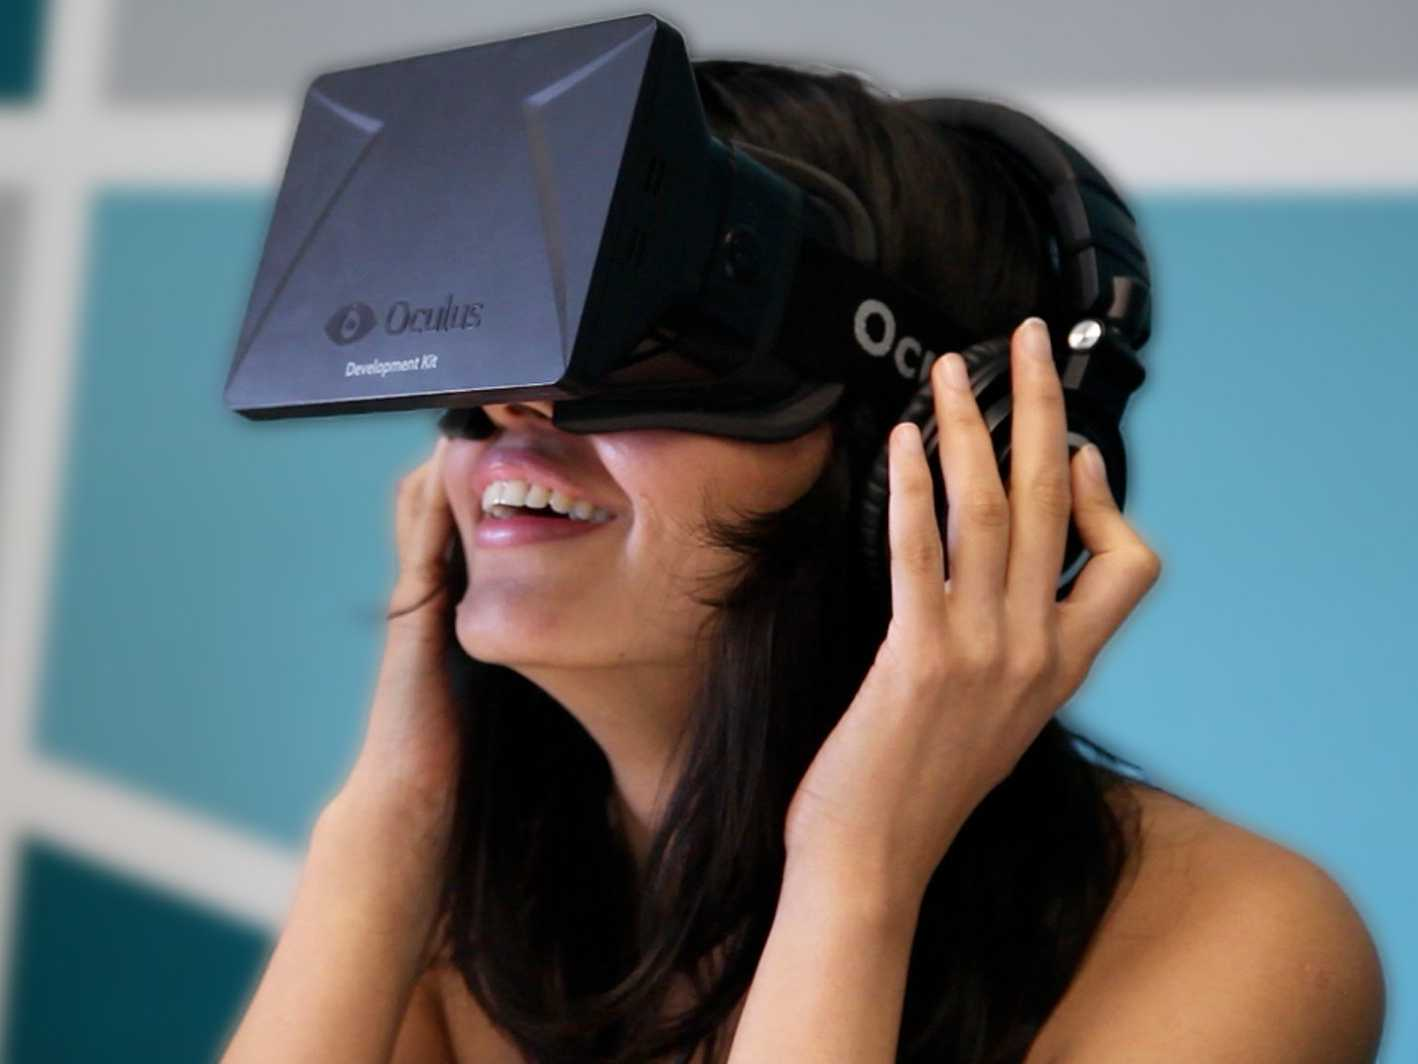 Oculus/Facebook Fallout: What Happens Next?